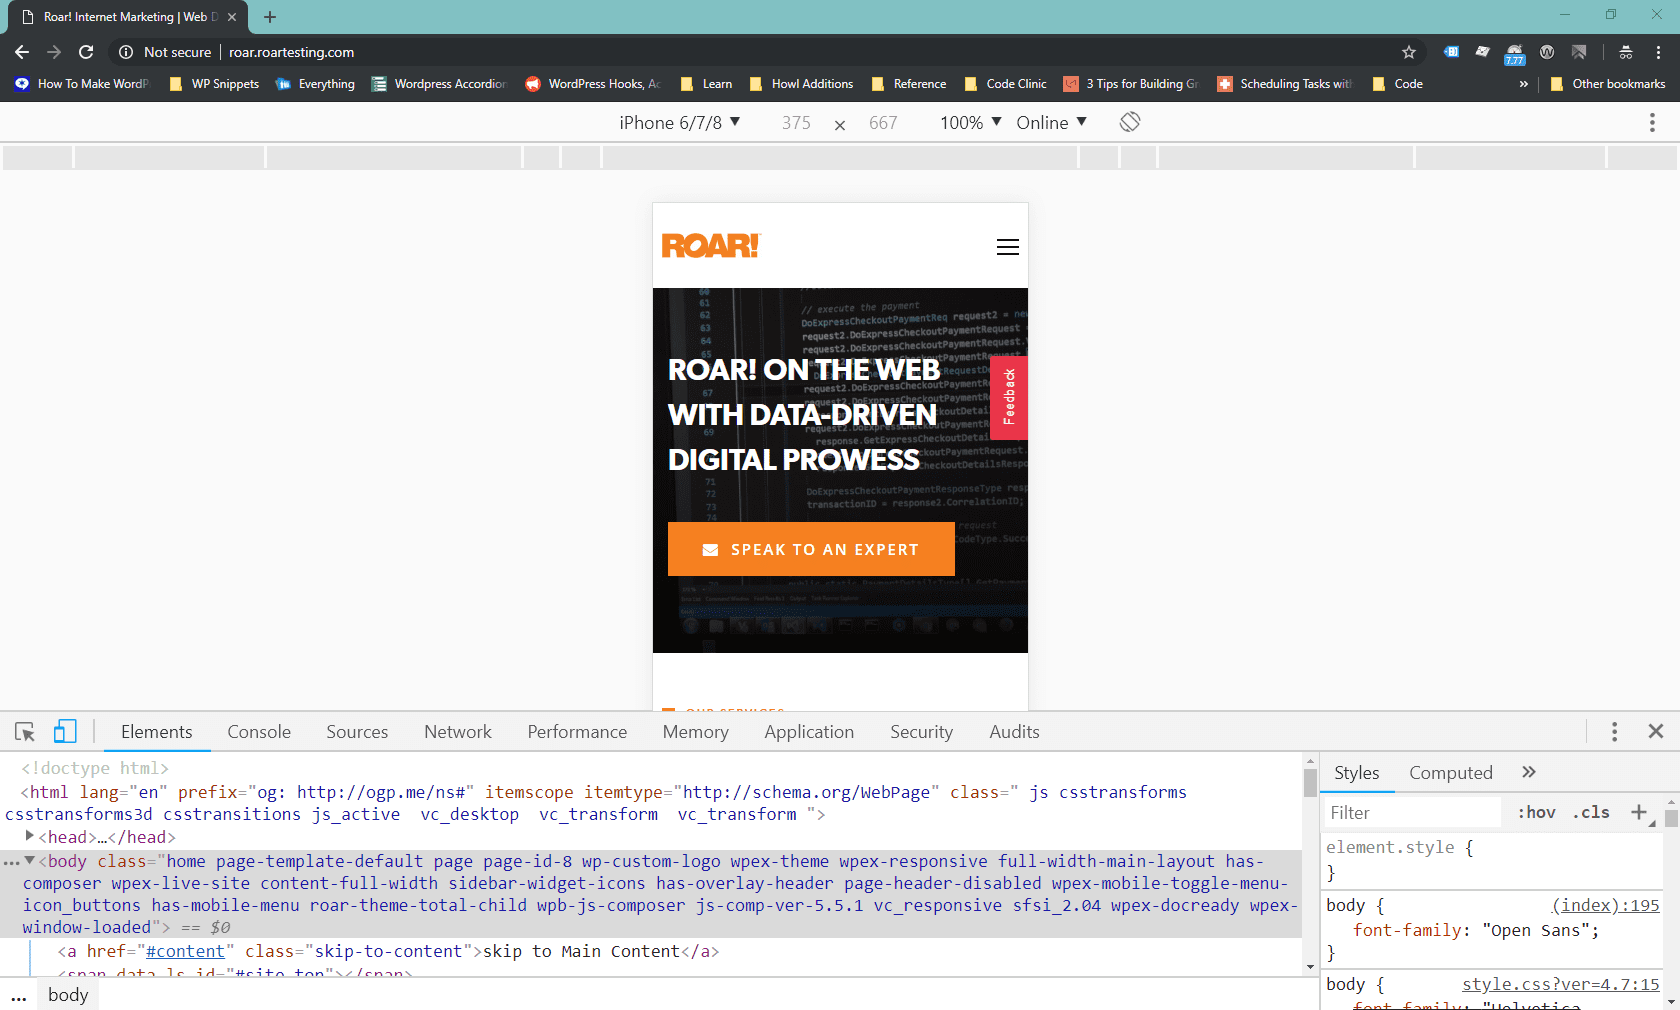 a google inspect tool shot of the ROAR! website